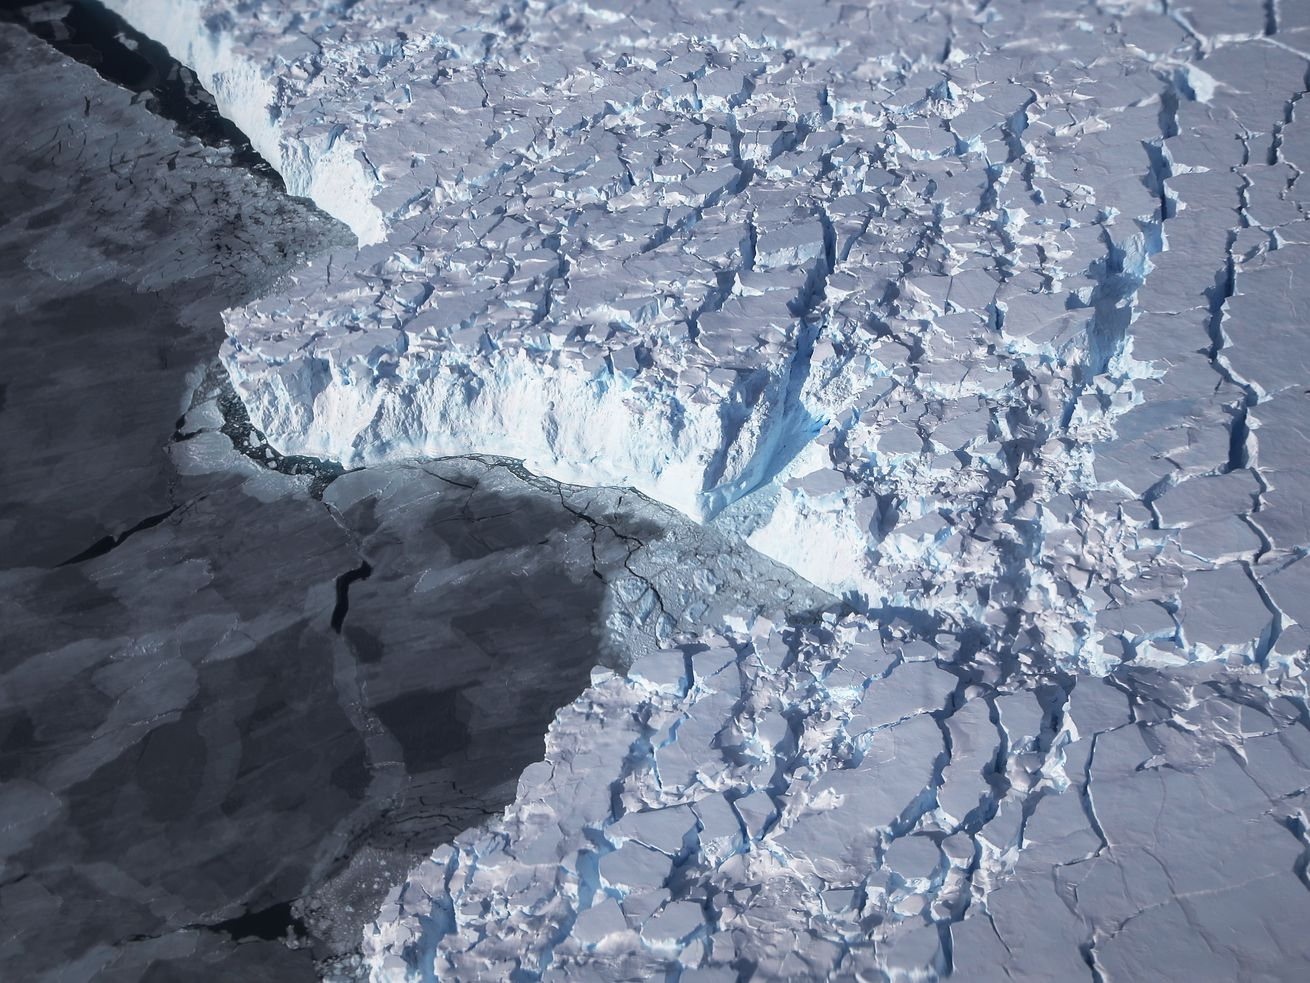 Ice in west Antarctica meets the ocean. The continent's ice is melting at an accelerating rate.